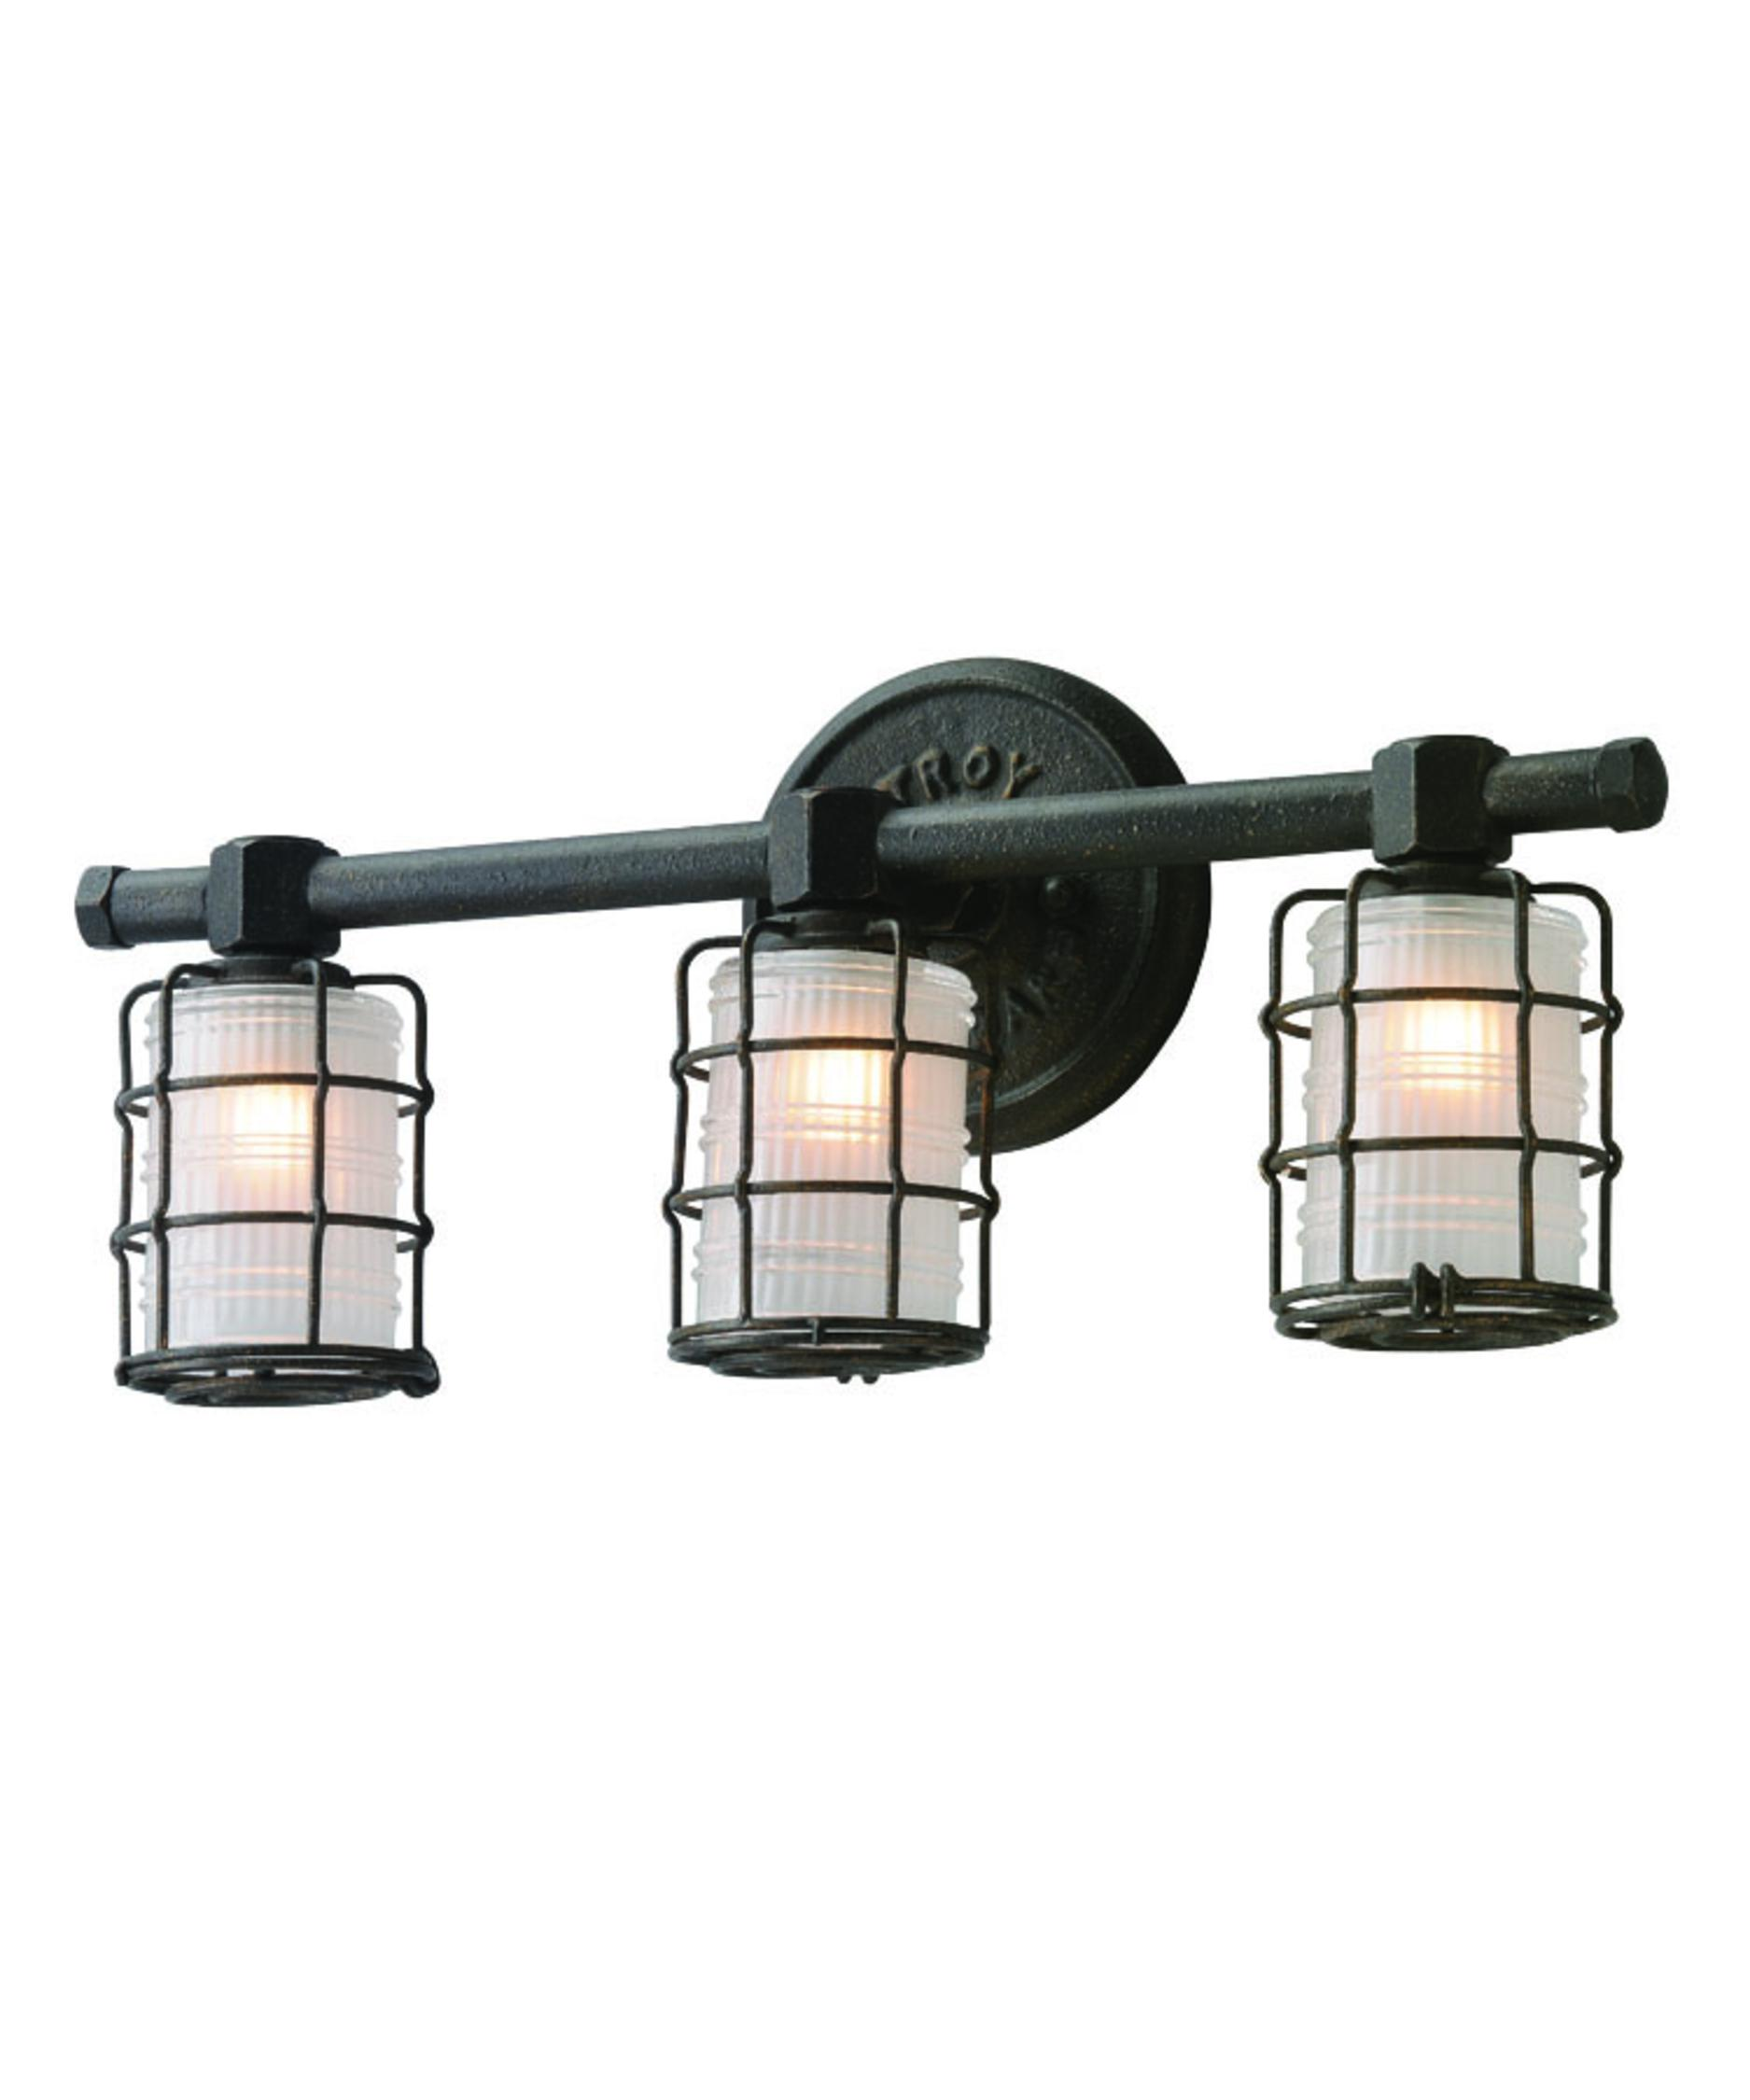 Bathroom Vanity Lights On Sale troy lighting b3843 mercantile 20 inch wide bath vanity light